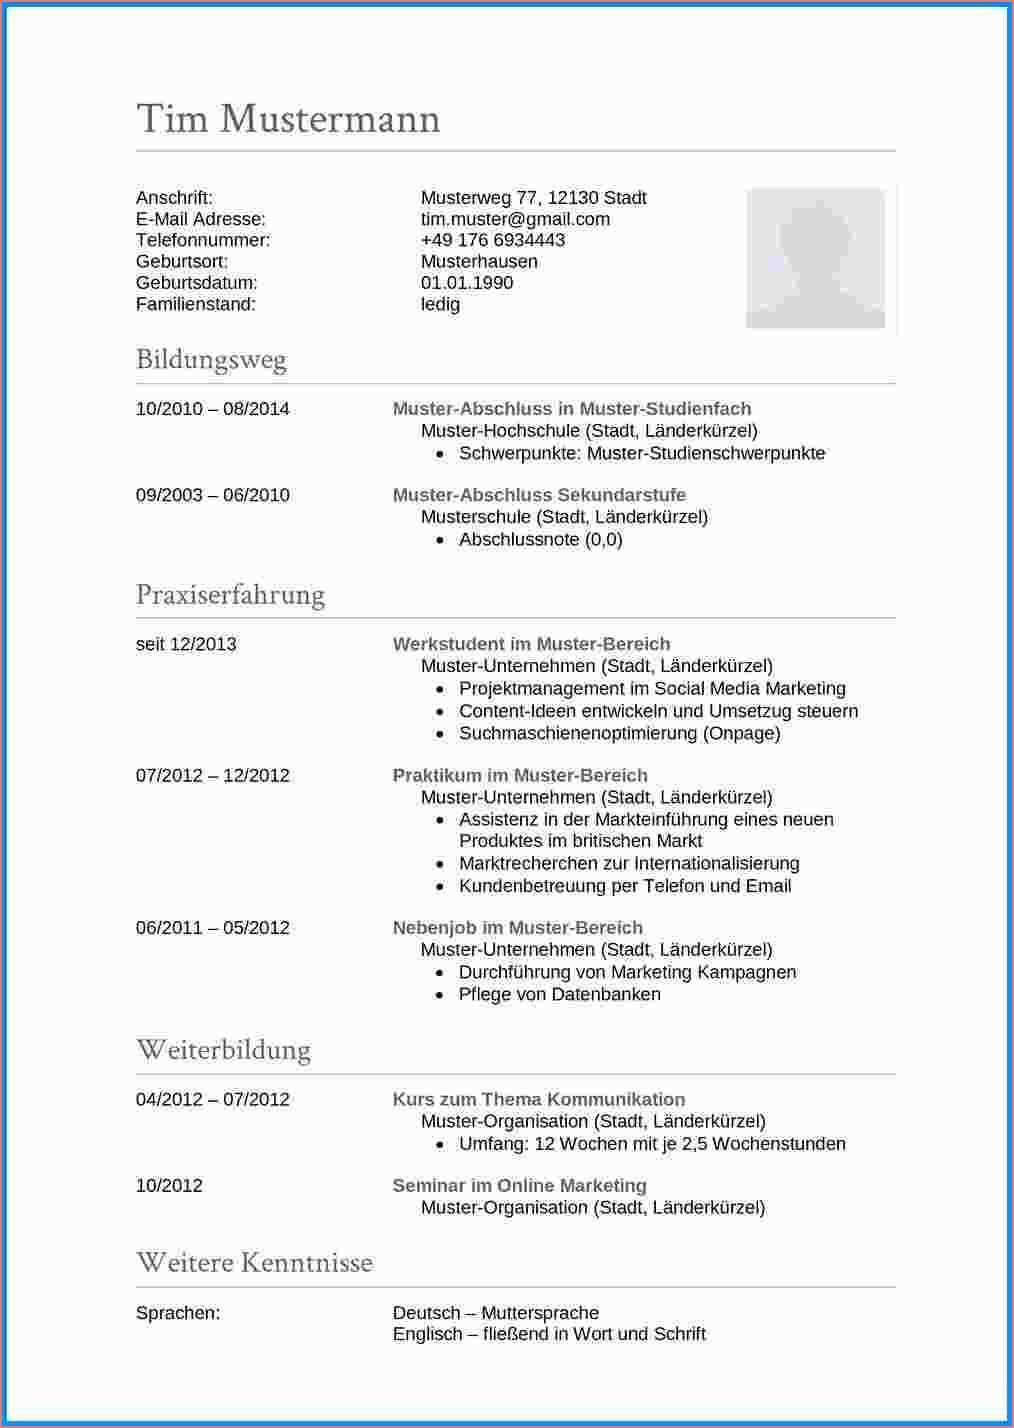 14 Hervorragend Lebenslauf Vorlage Englisch Fotos Resume Words Document Templates Types Of Resumes